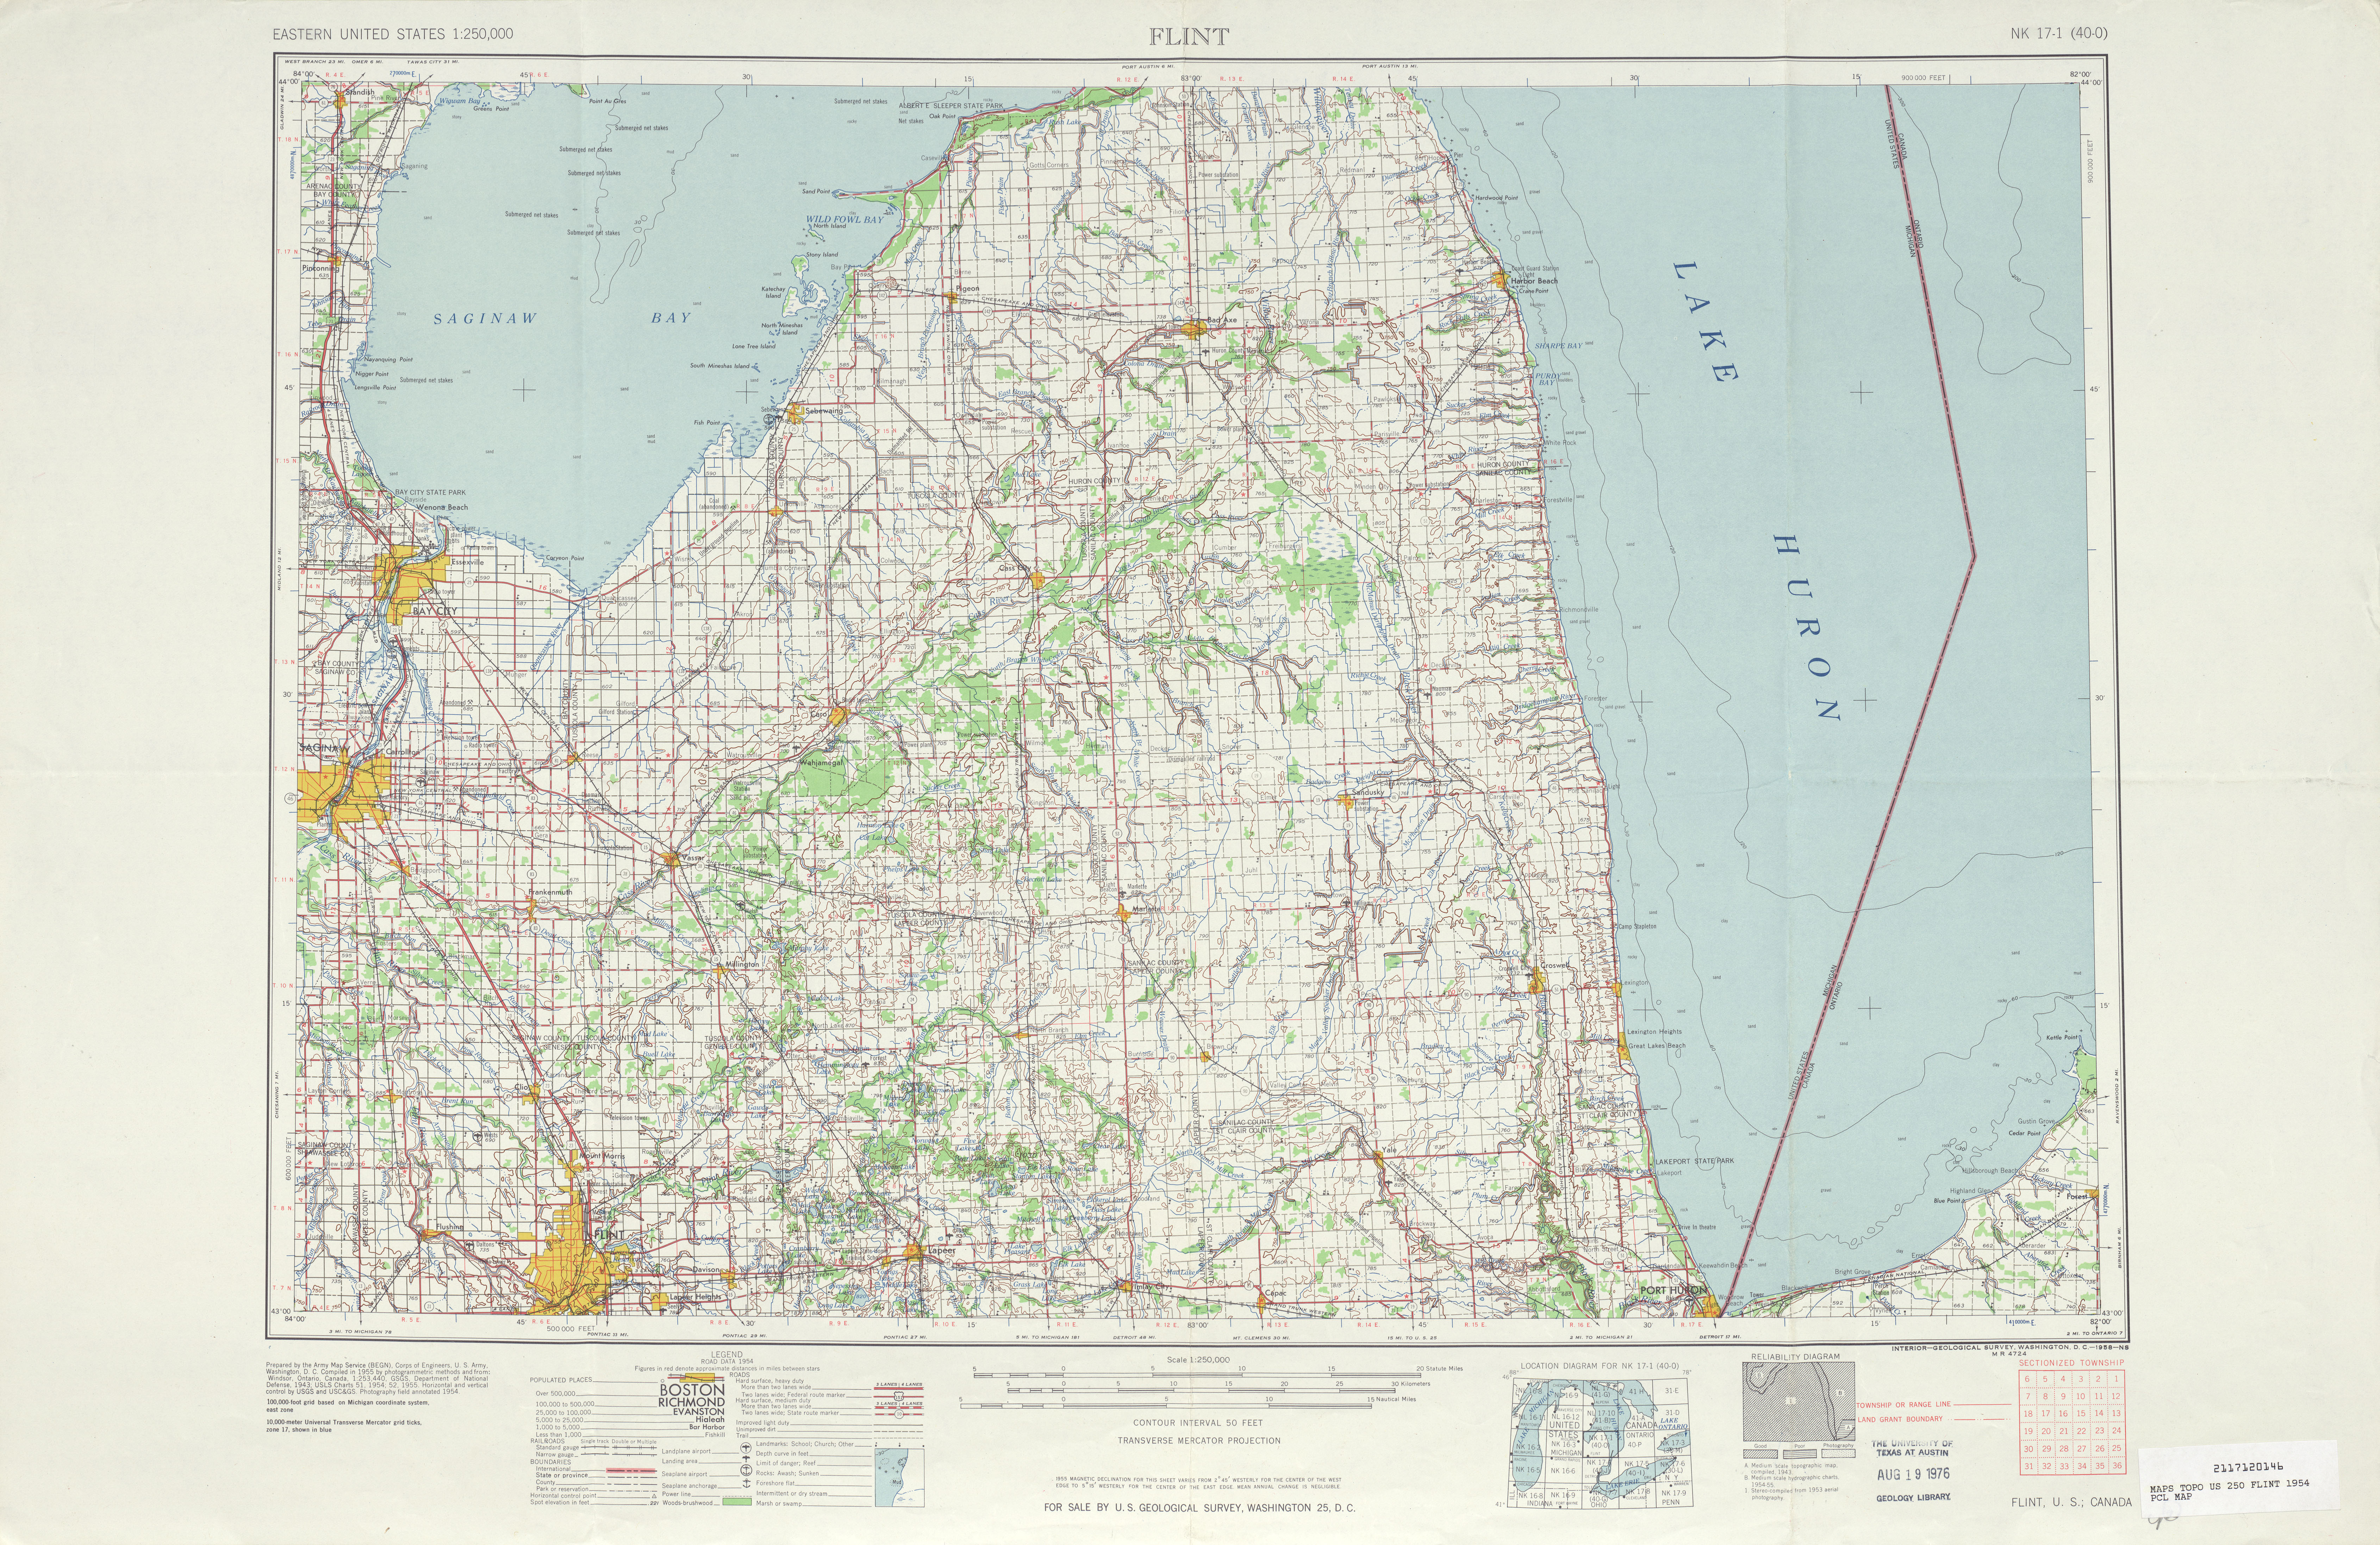 Flint Topographic Map Sheet, United States 1954